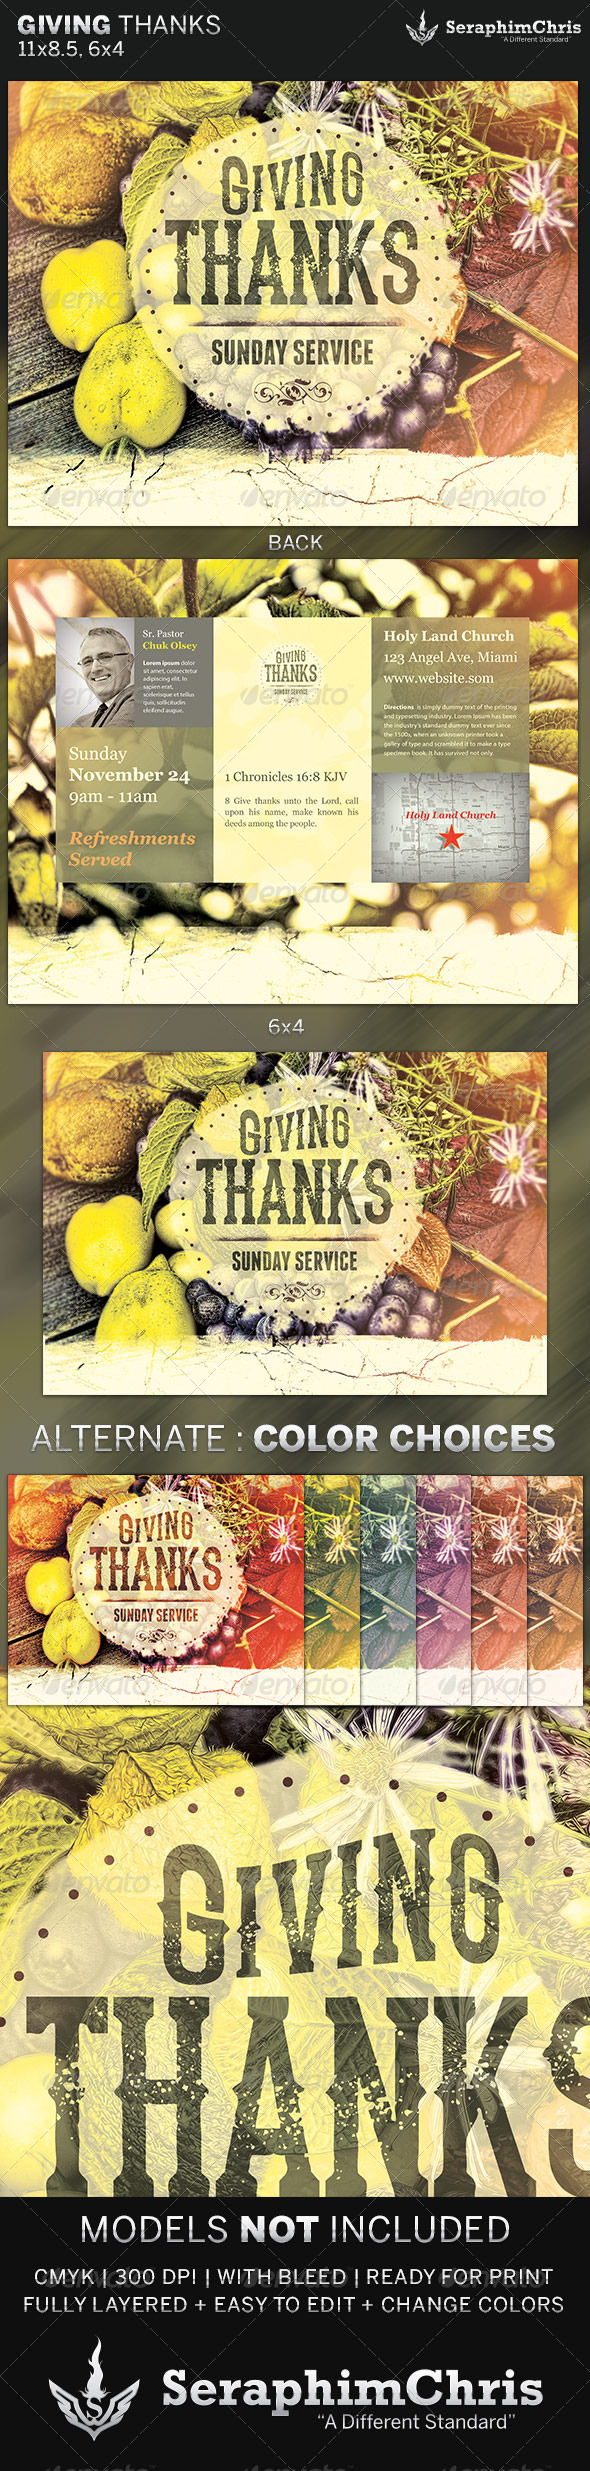 Giving Thanks: Harvest Church Flyer Template - Church Flyers